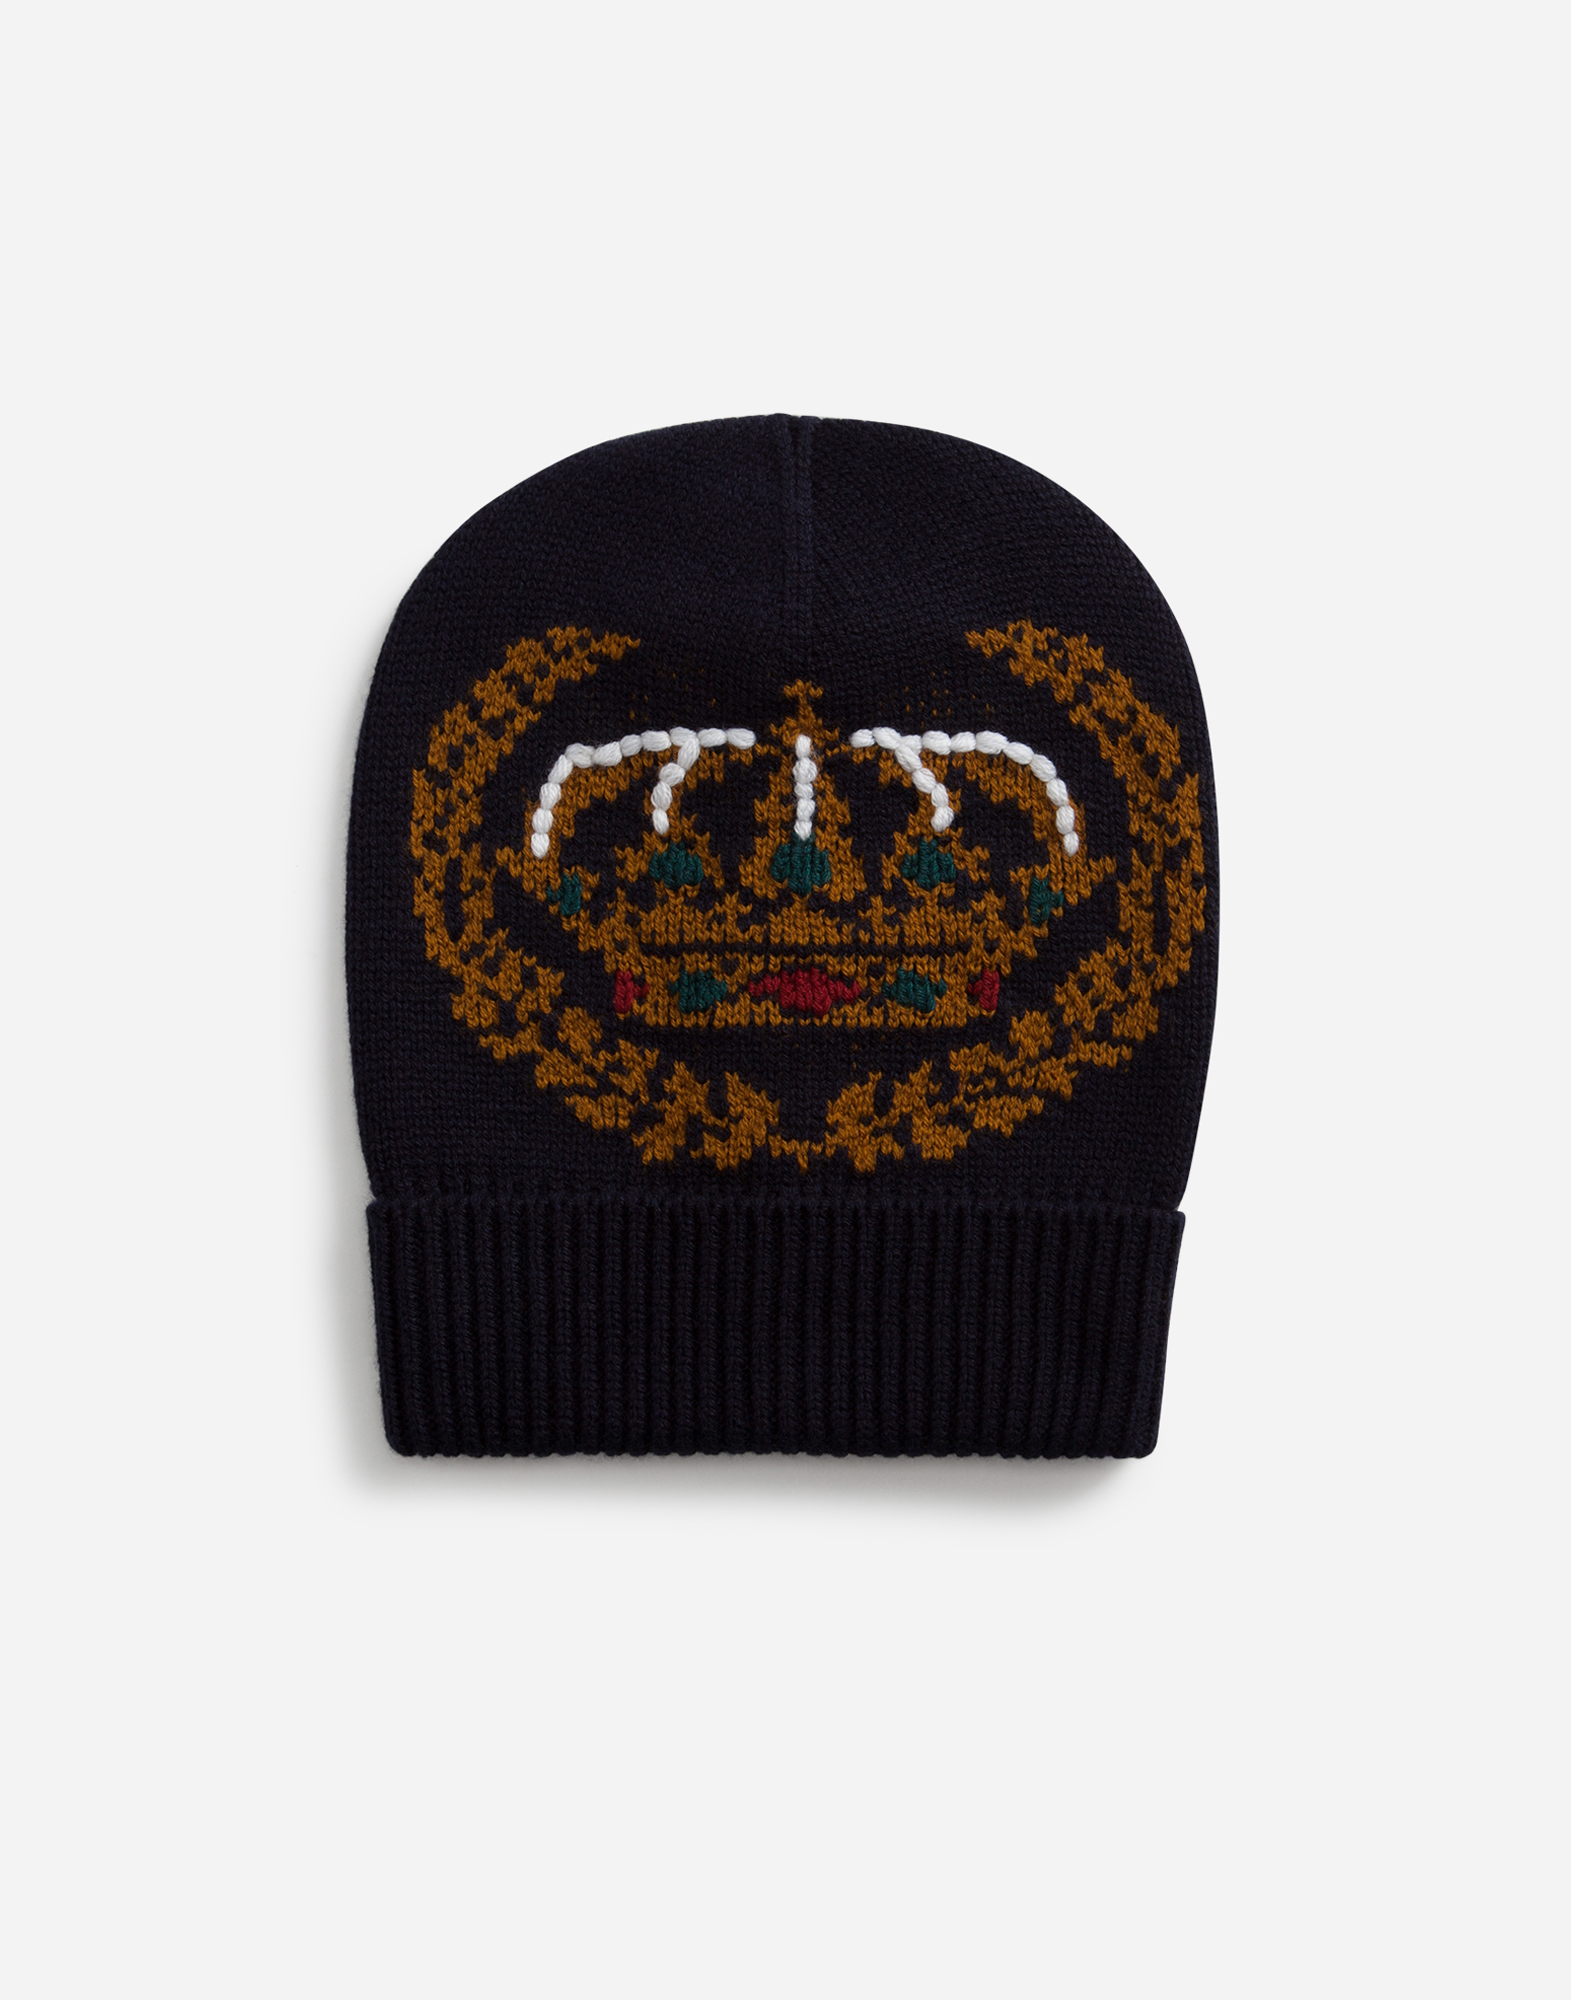 Dolce & Gabbana HAT IN INLAID CASHMERE AND WOOL WITH EMBROIDERY